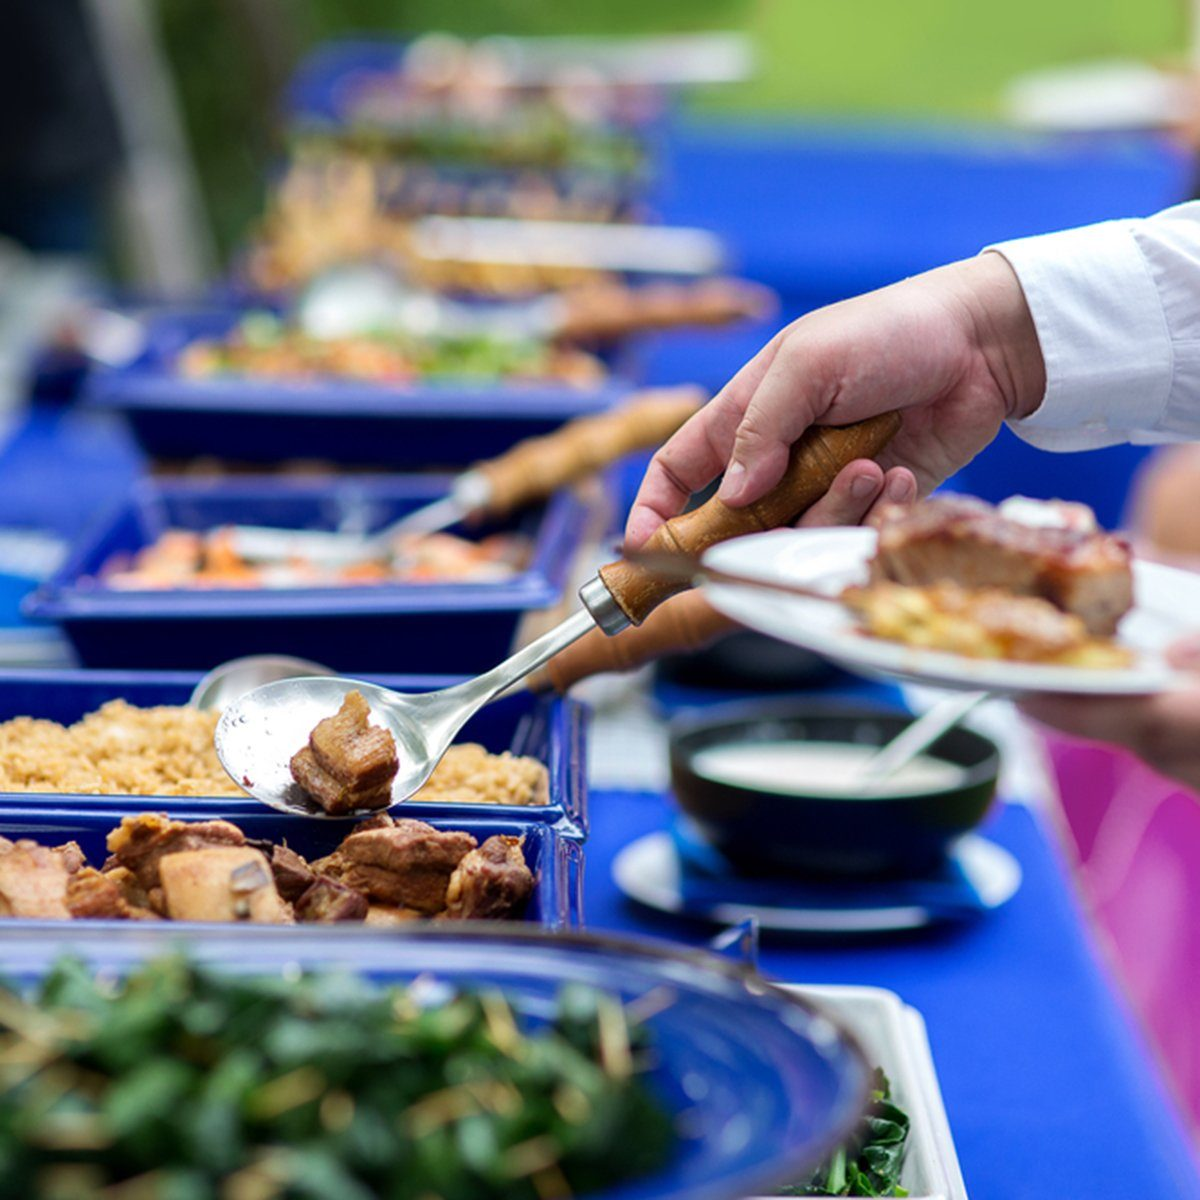 group in the line catering buffet food indoor in luxury restaurant with meat colorful rice and vegetables